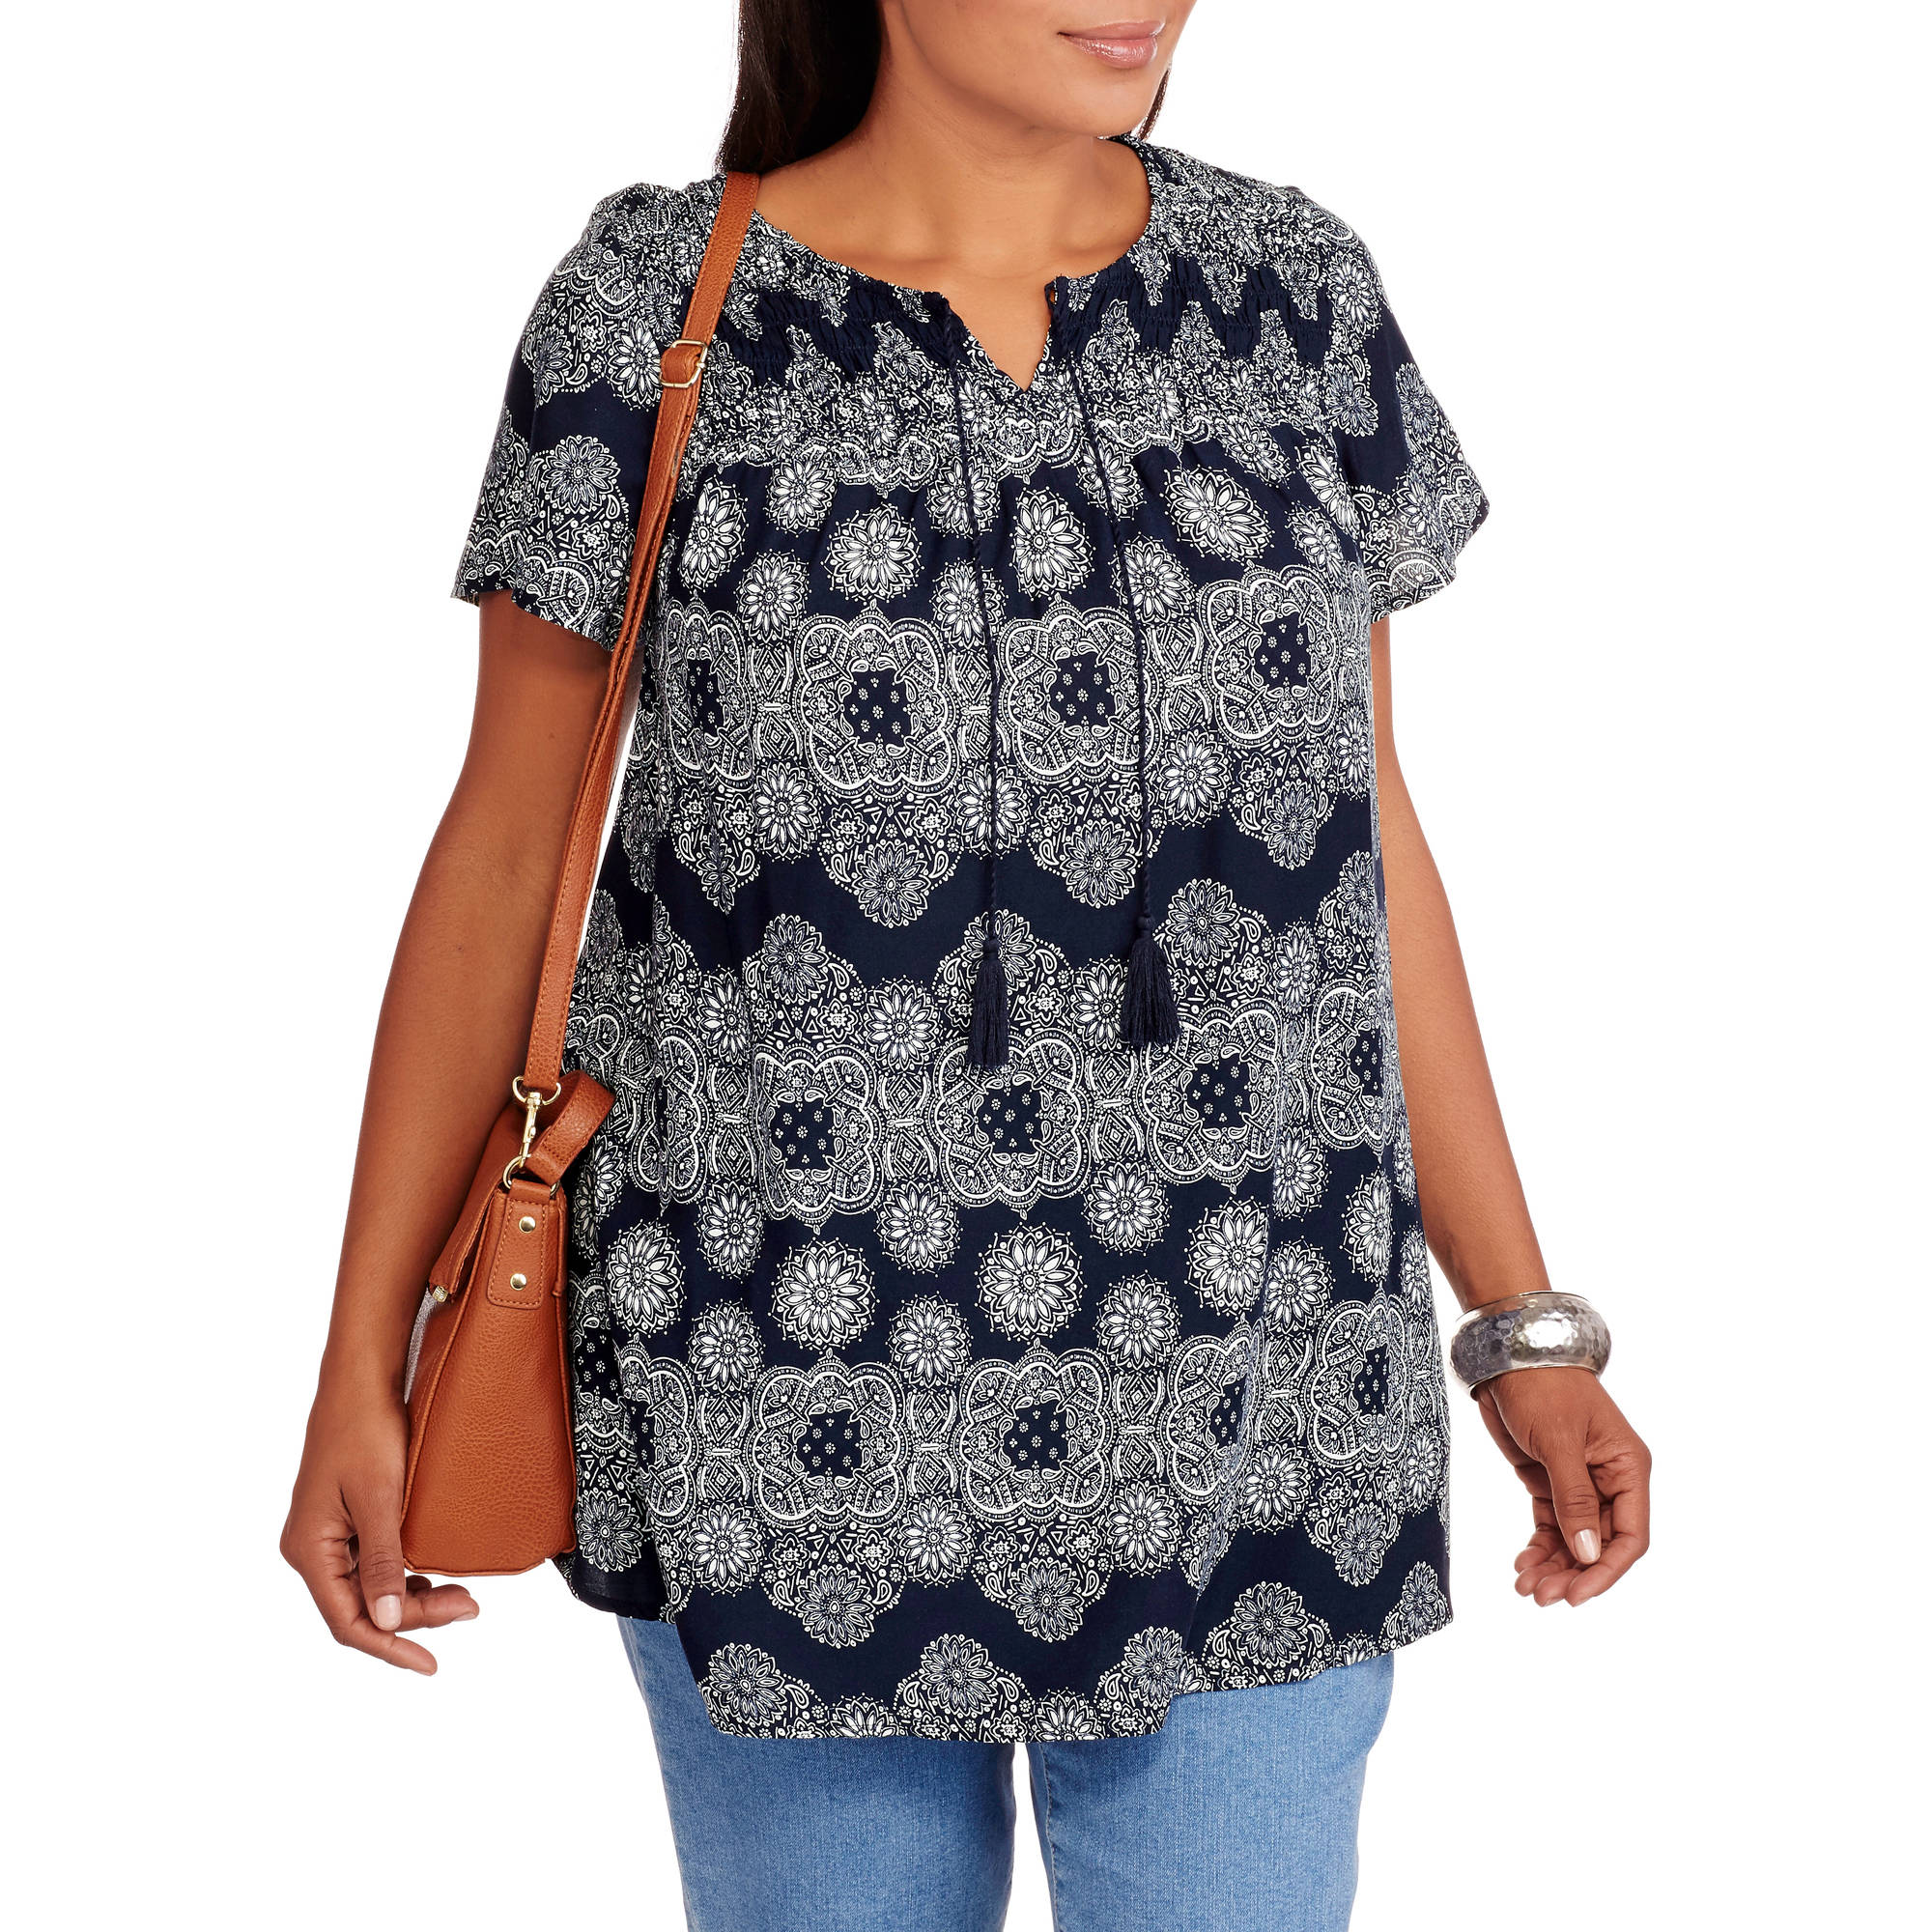 Faded Glory Women S Plus Size Woven Peasant Top Walmart Com